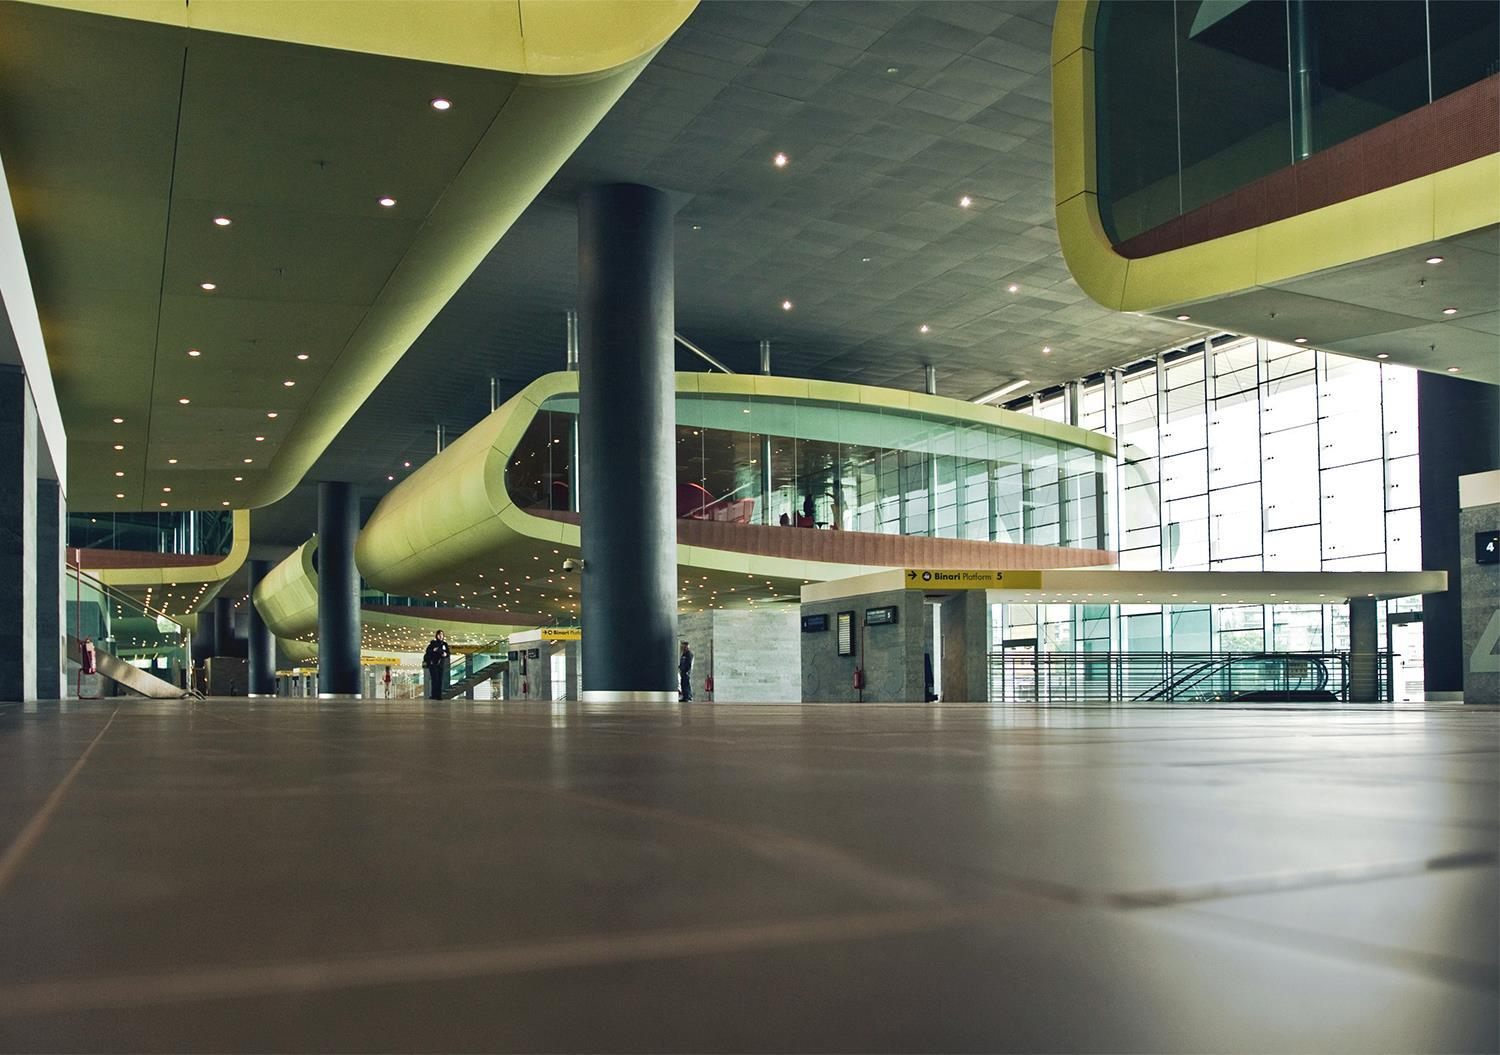 Roma Tiburtina Railway Station: Photo 3